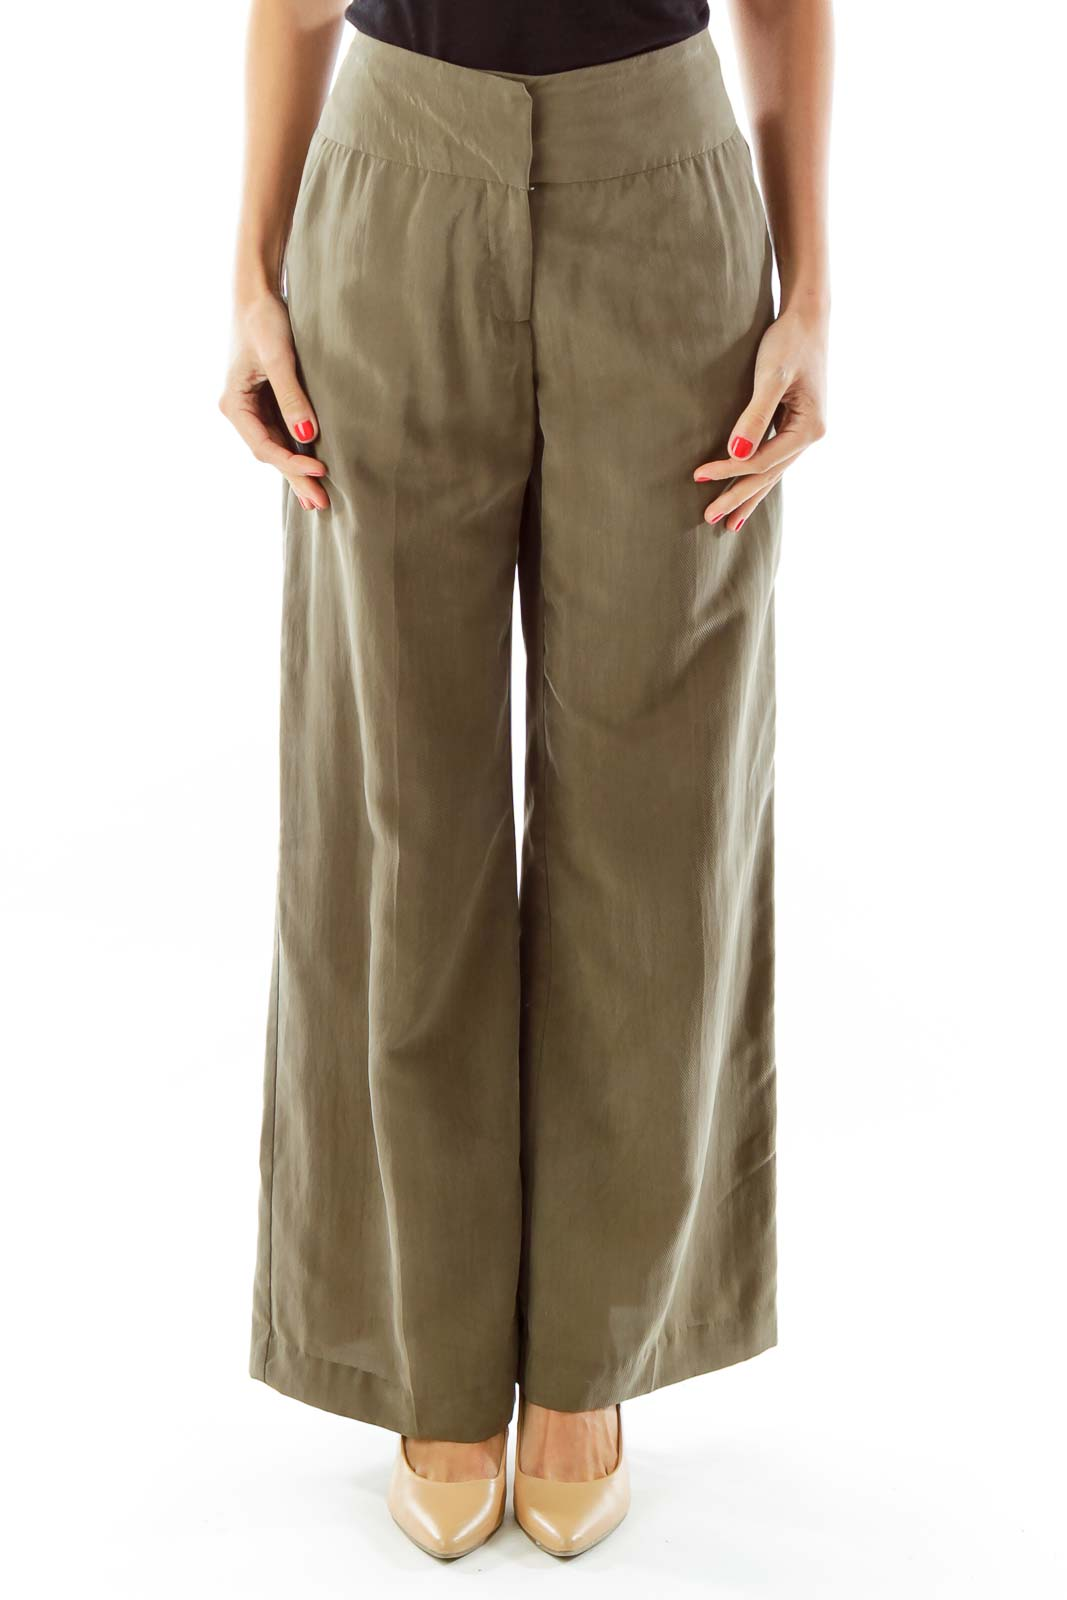 Olive Green Wide-Leg Pants Front